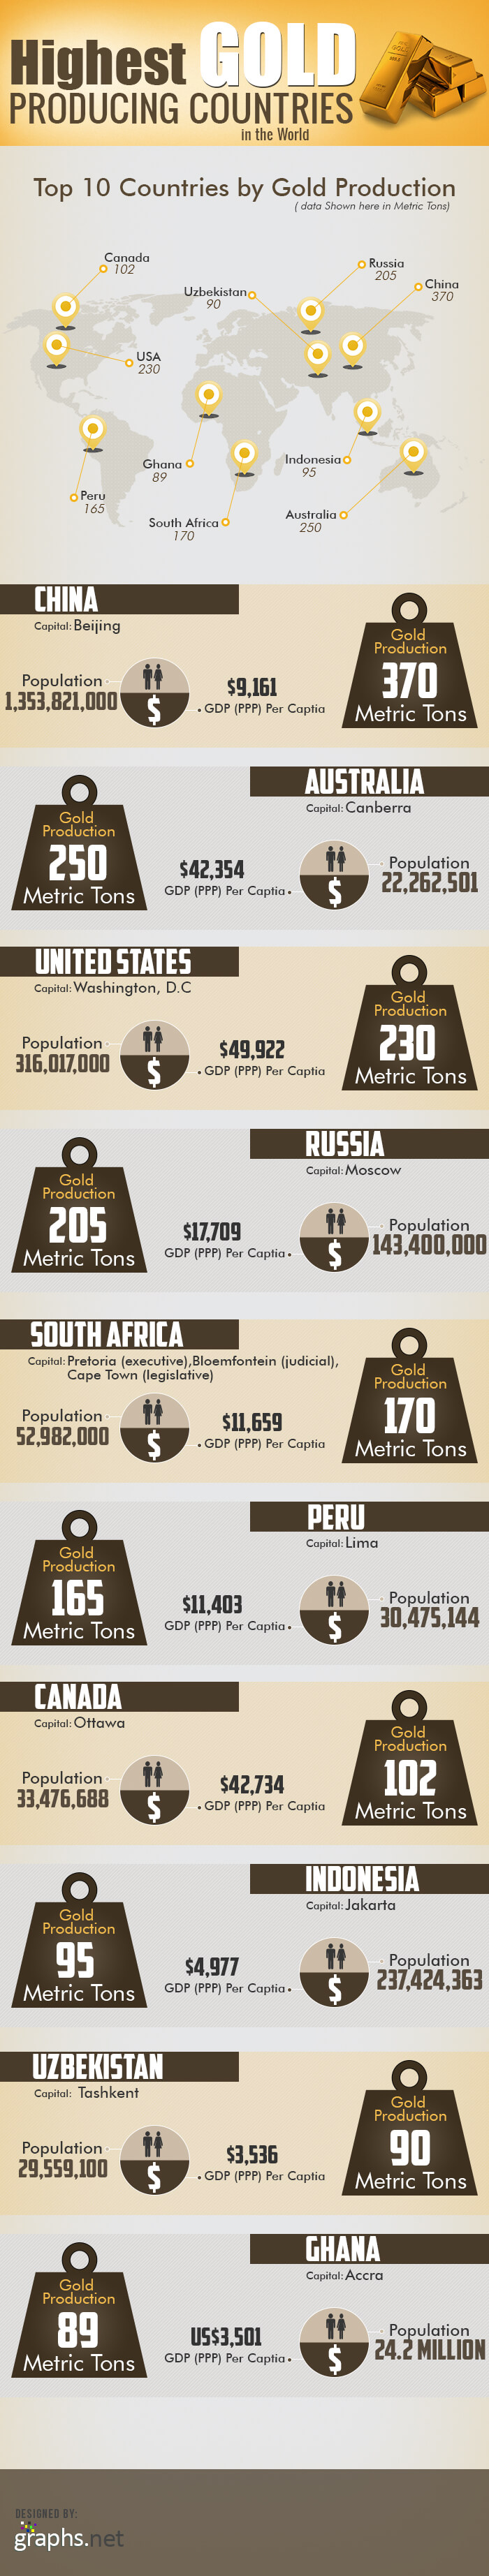 The world's 10 top gold producers [infographic]